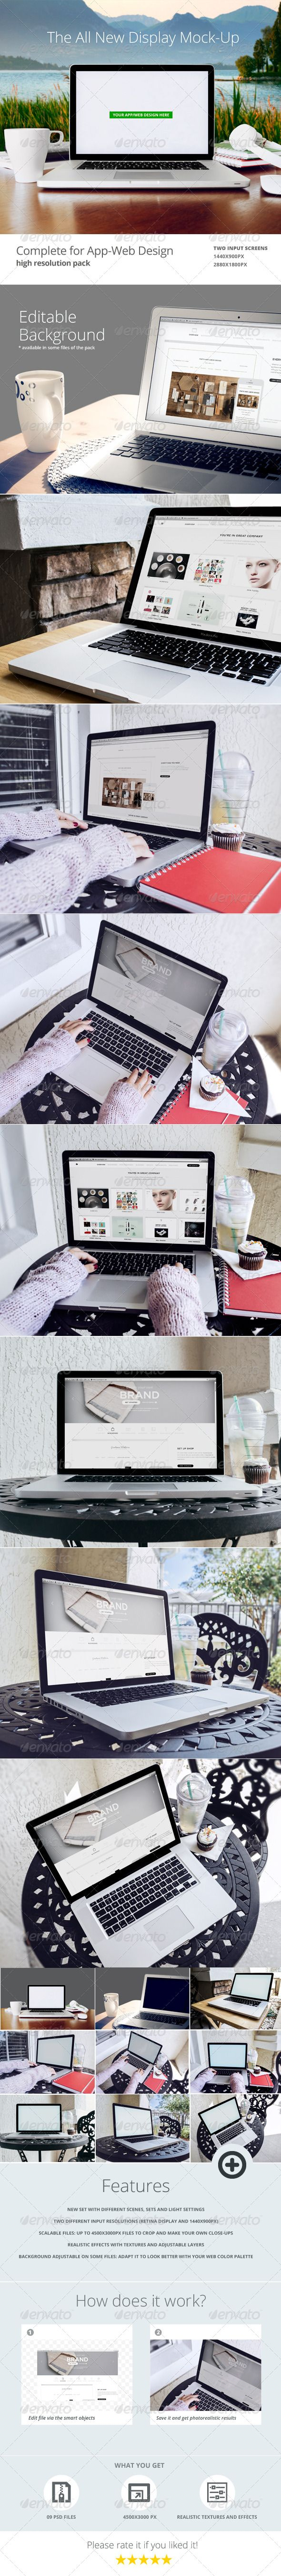 Laptop Web App Mock Up 09 PSD Files For Sale And Showcase Your Or